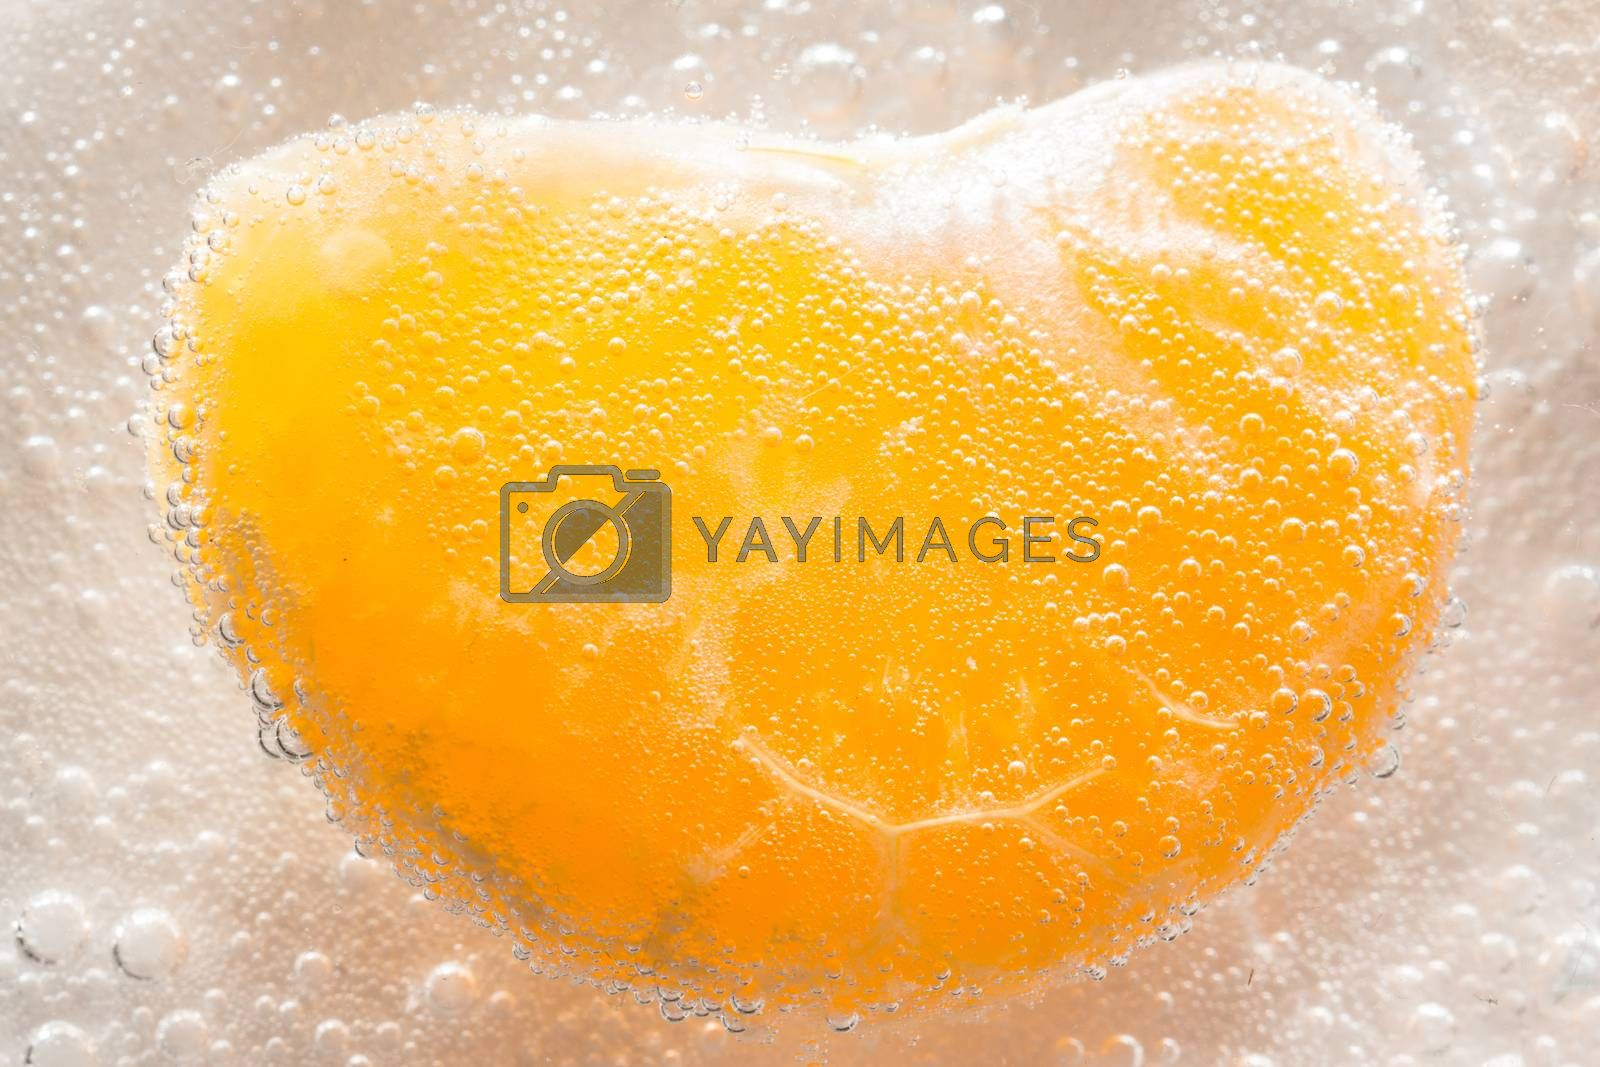 The photo depicts a tangerine in bubbles